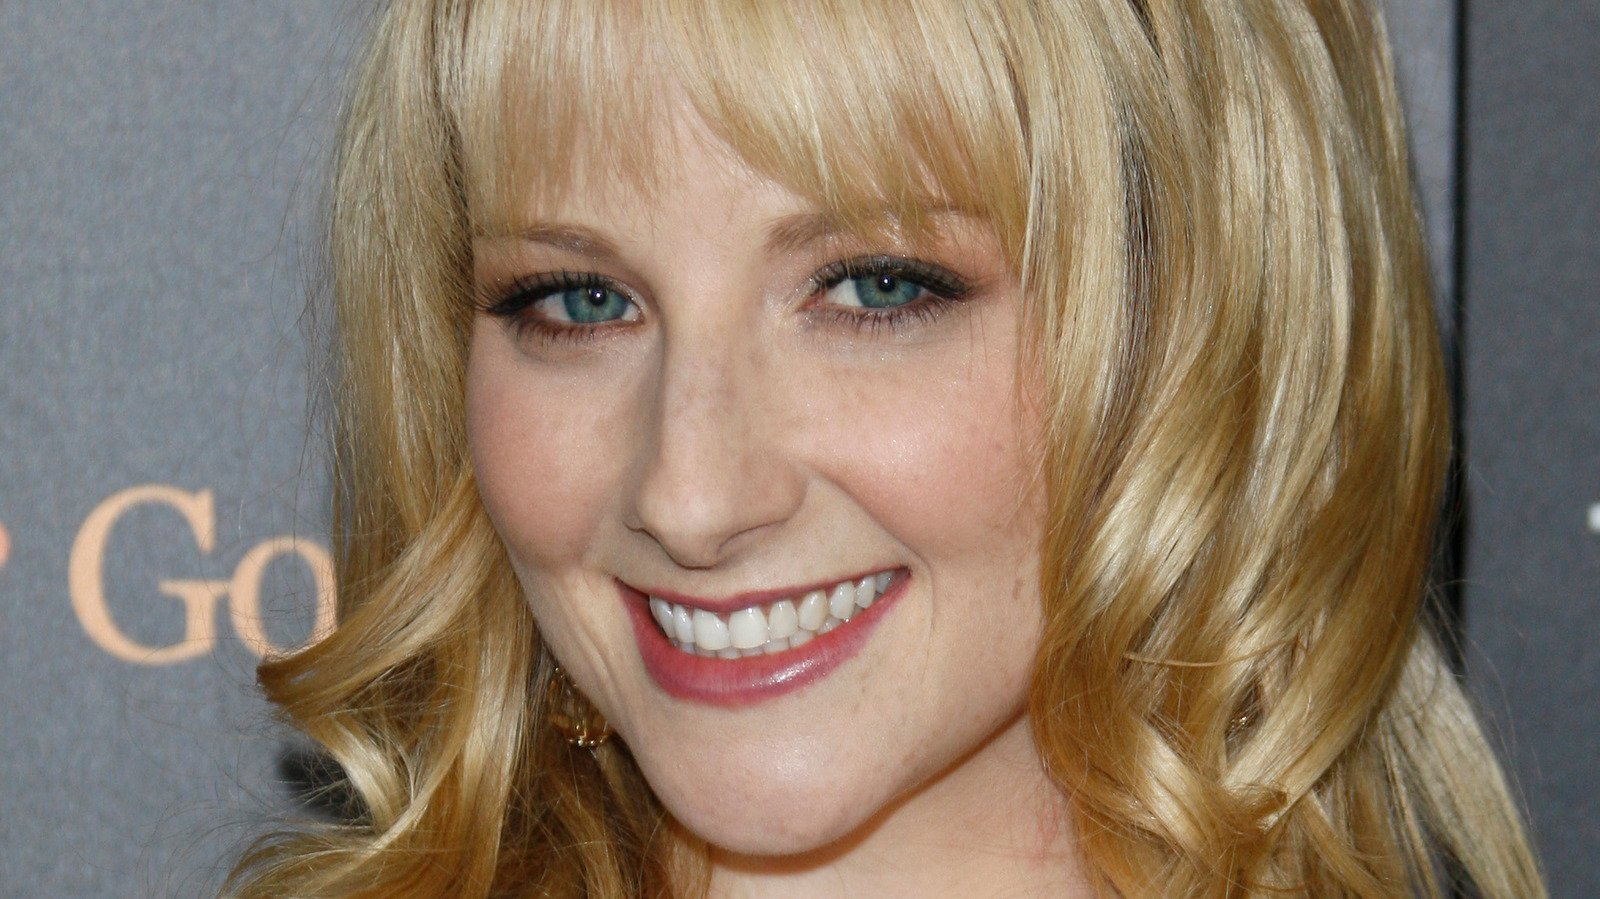 The Transformation Of Melissa Rauch From Childhood To The Big Bang Theory